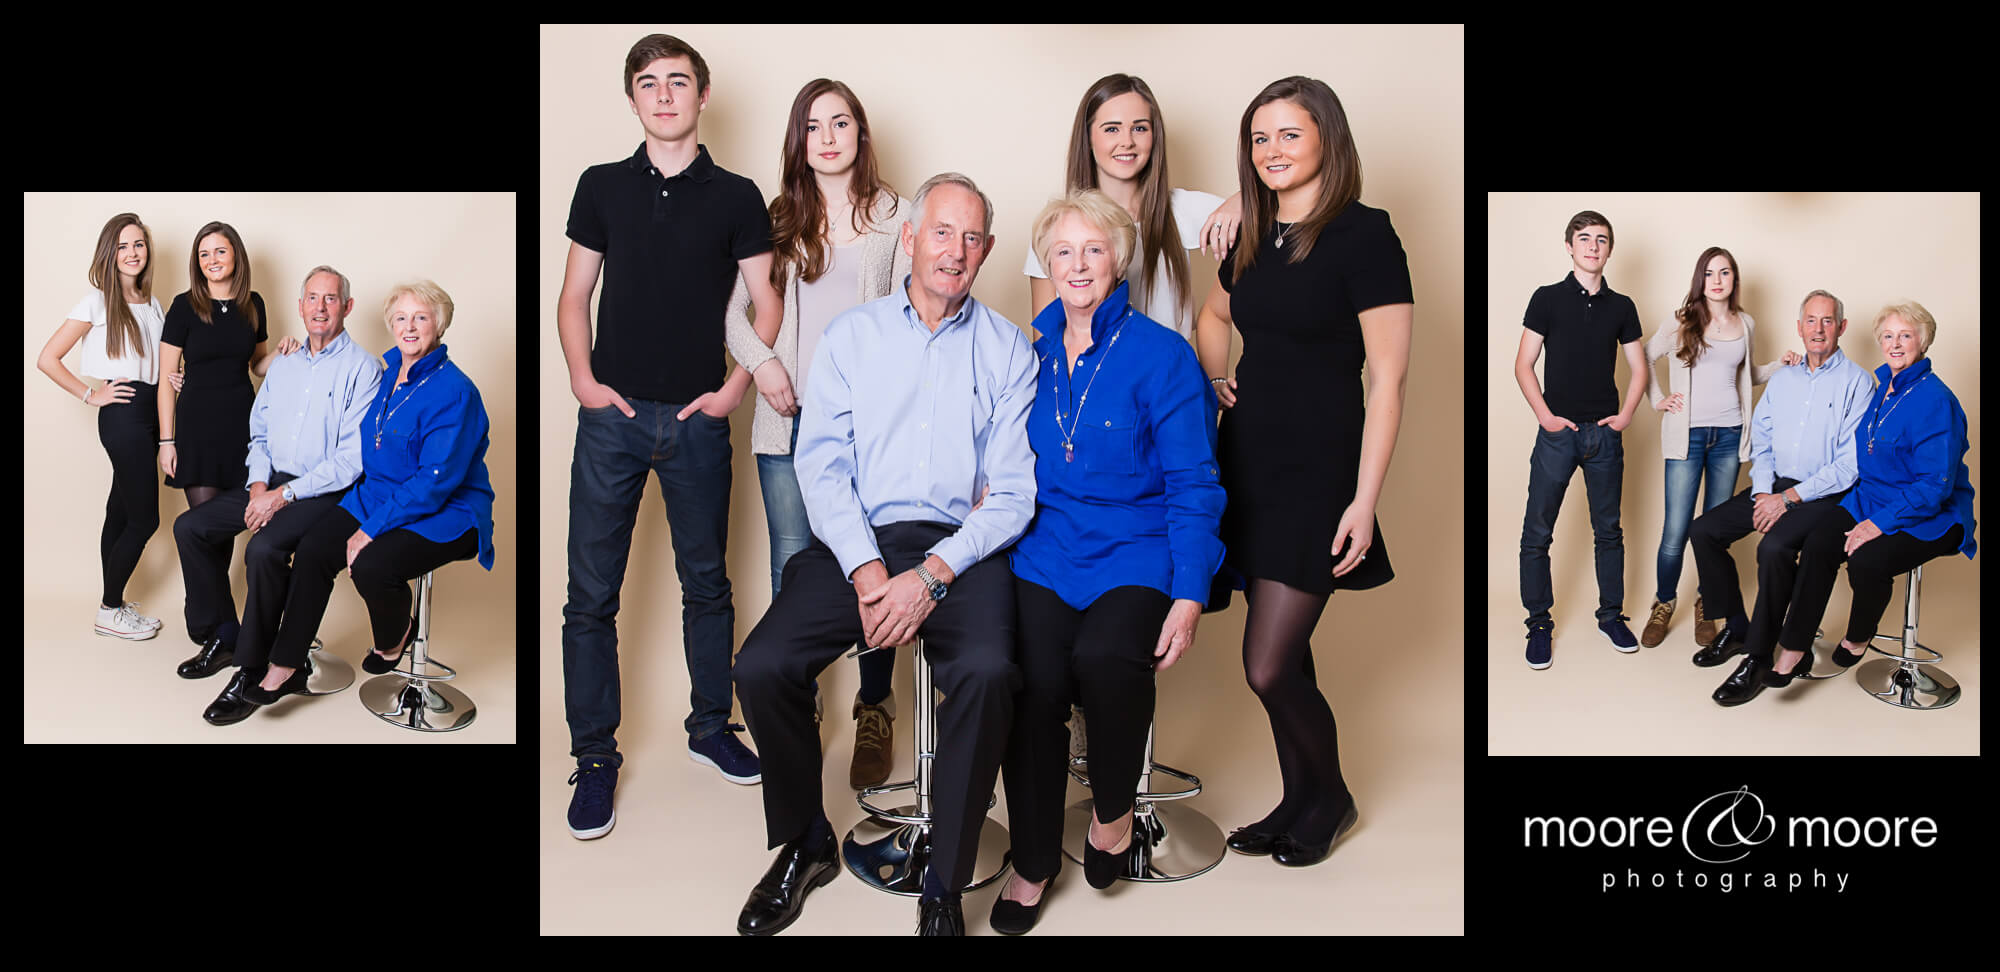 Group Portraits in Photo Session for family generations by Photographer Hampshire, moore&moore photography